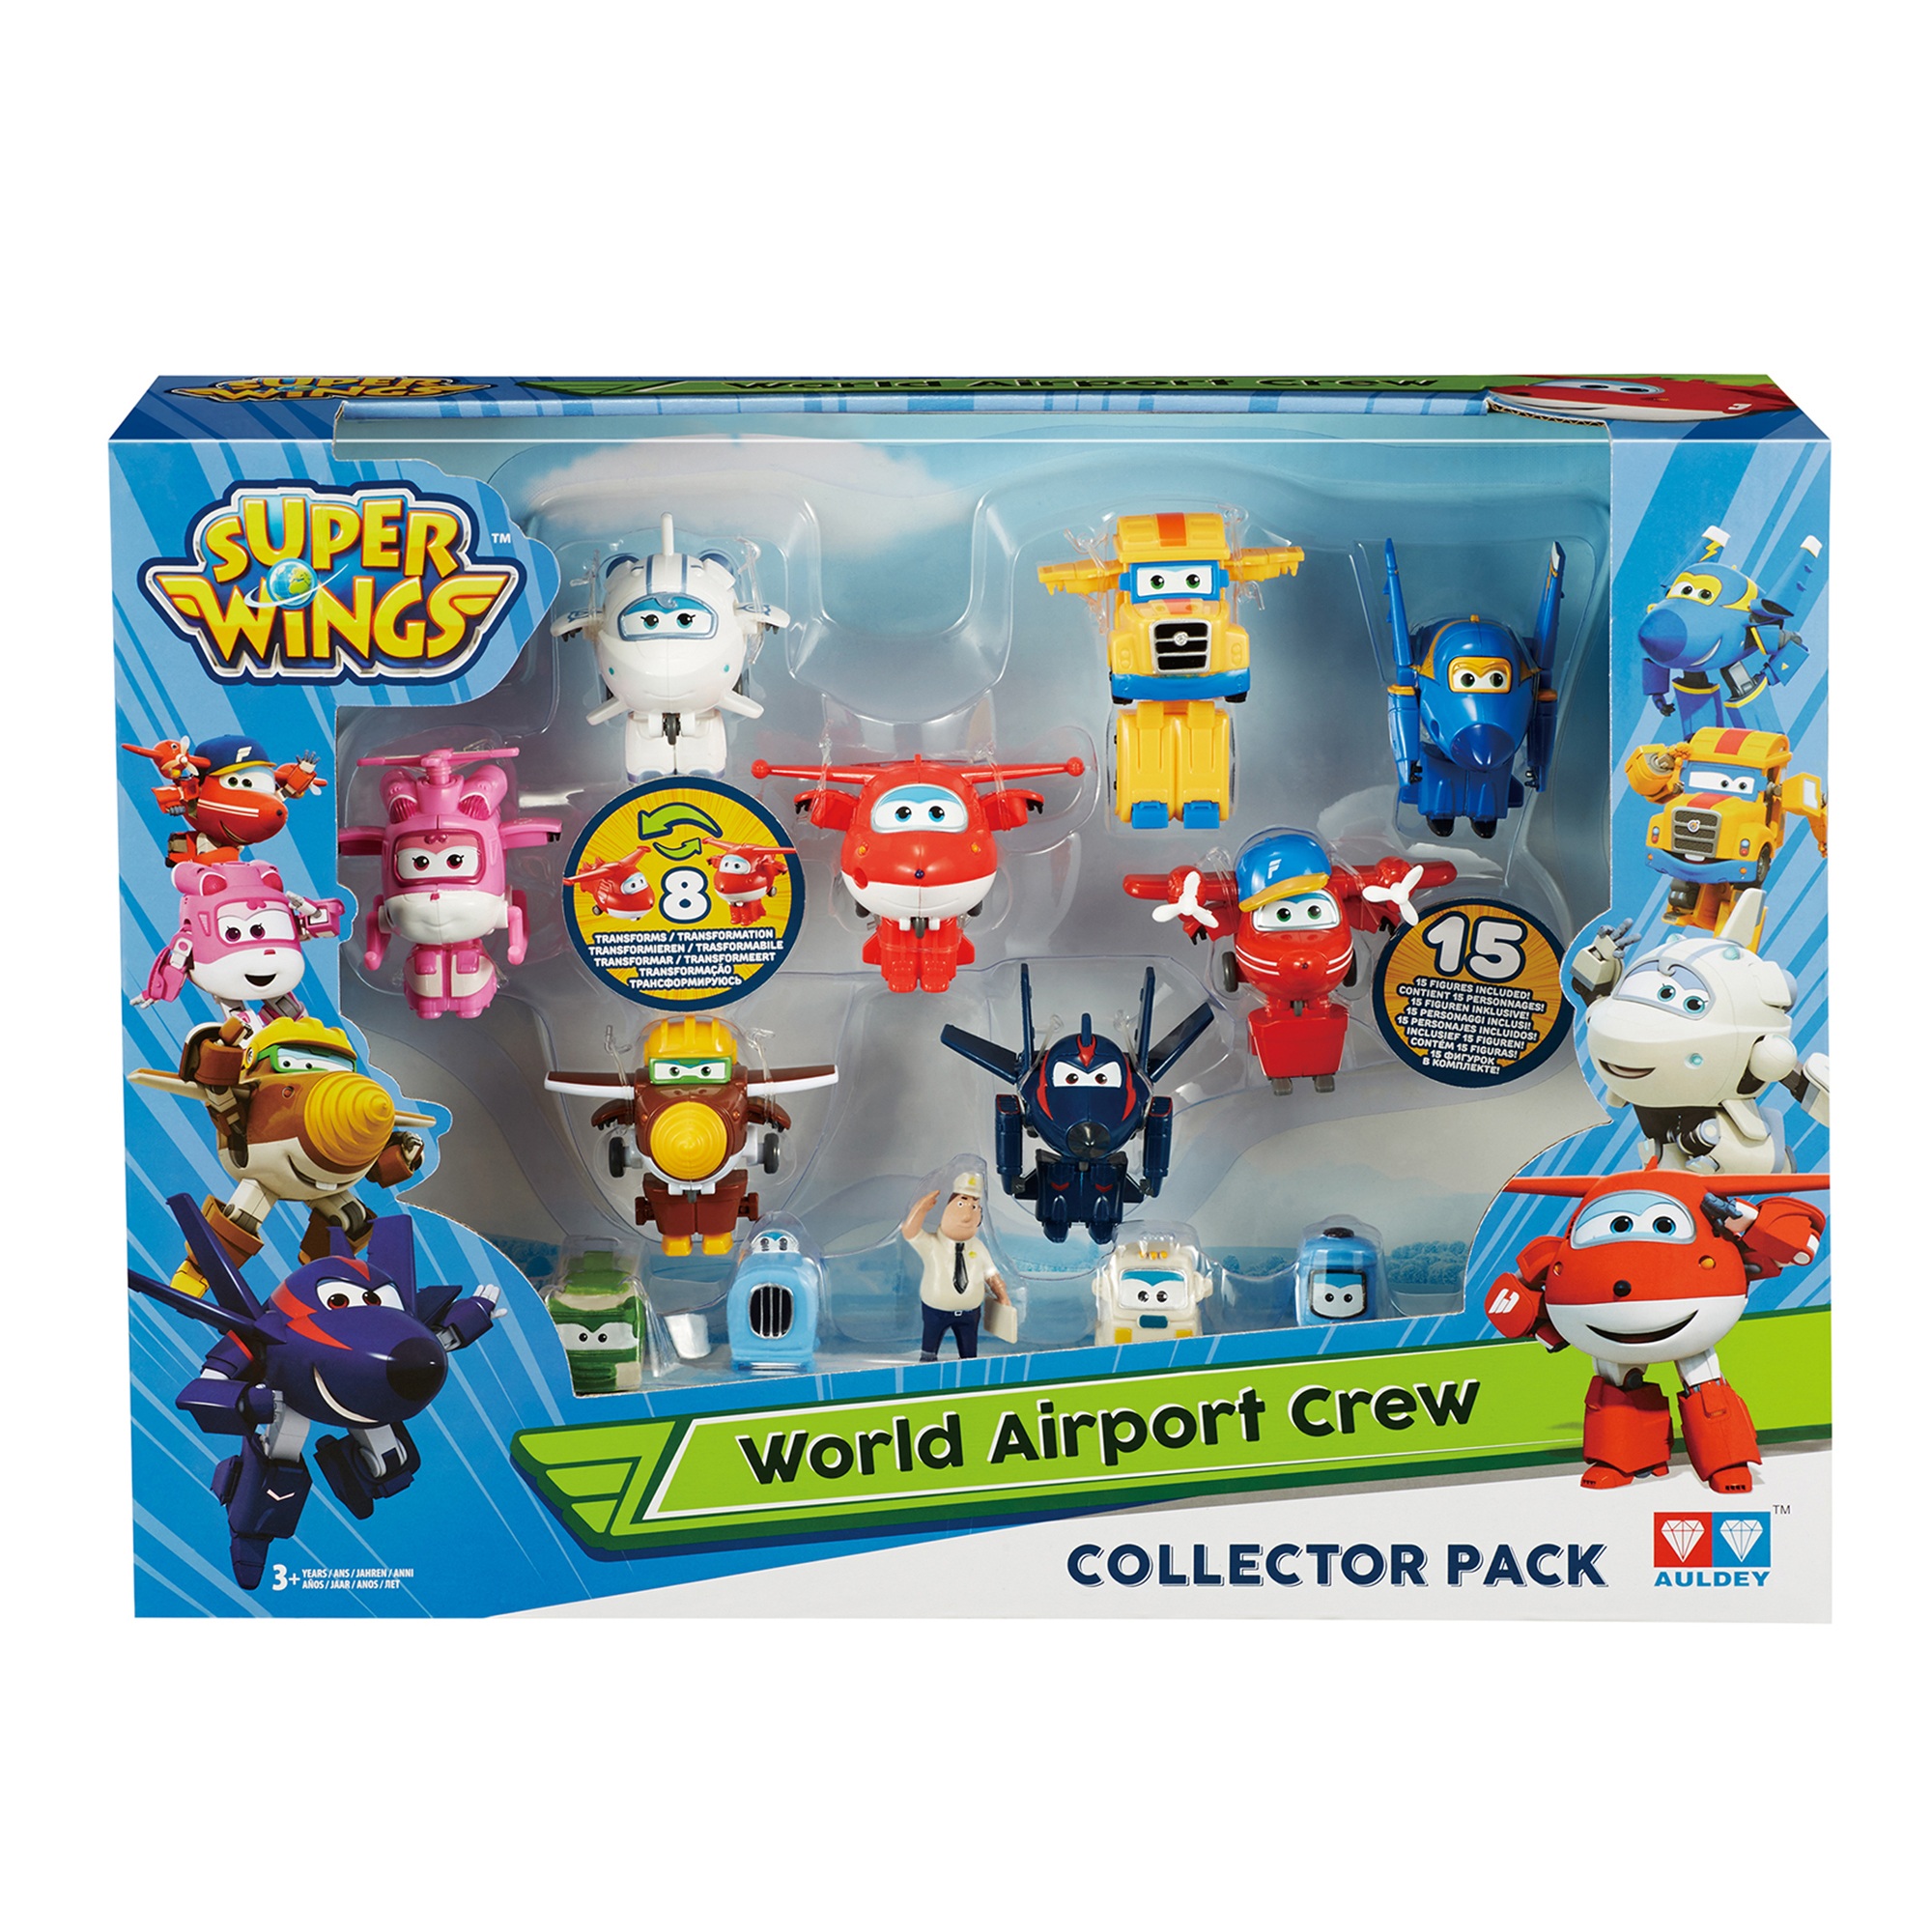 Super Wings World Airport New Crew Collector Pack Assortment